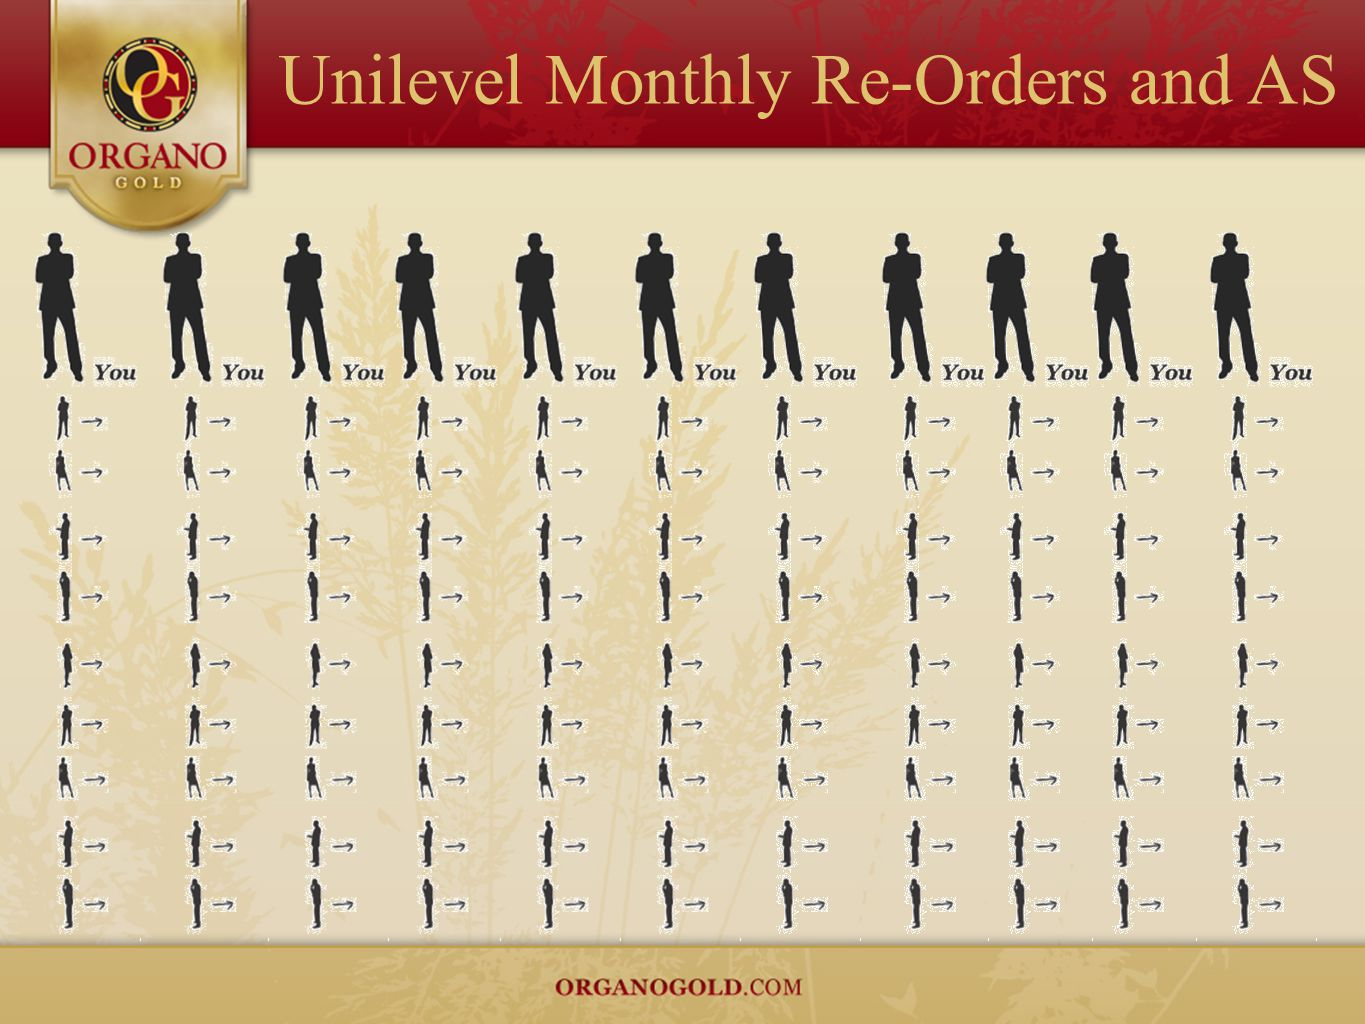 Unilevel Monthly Re-Orders and AS